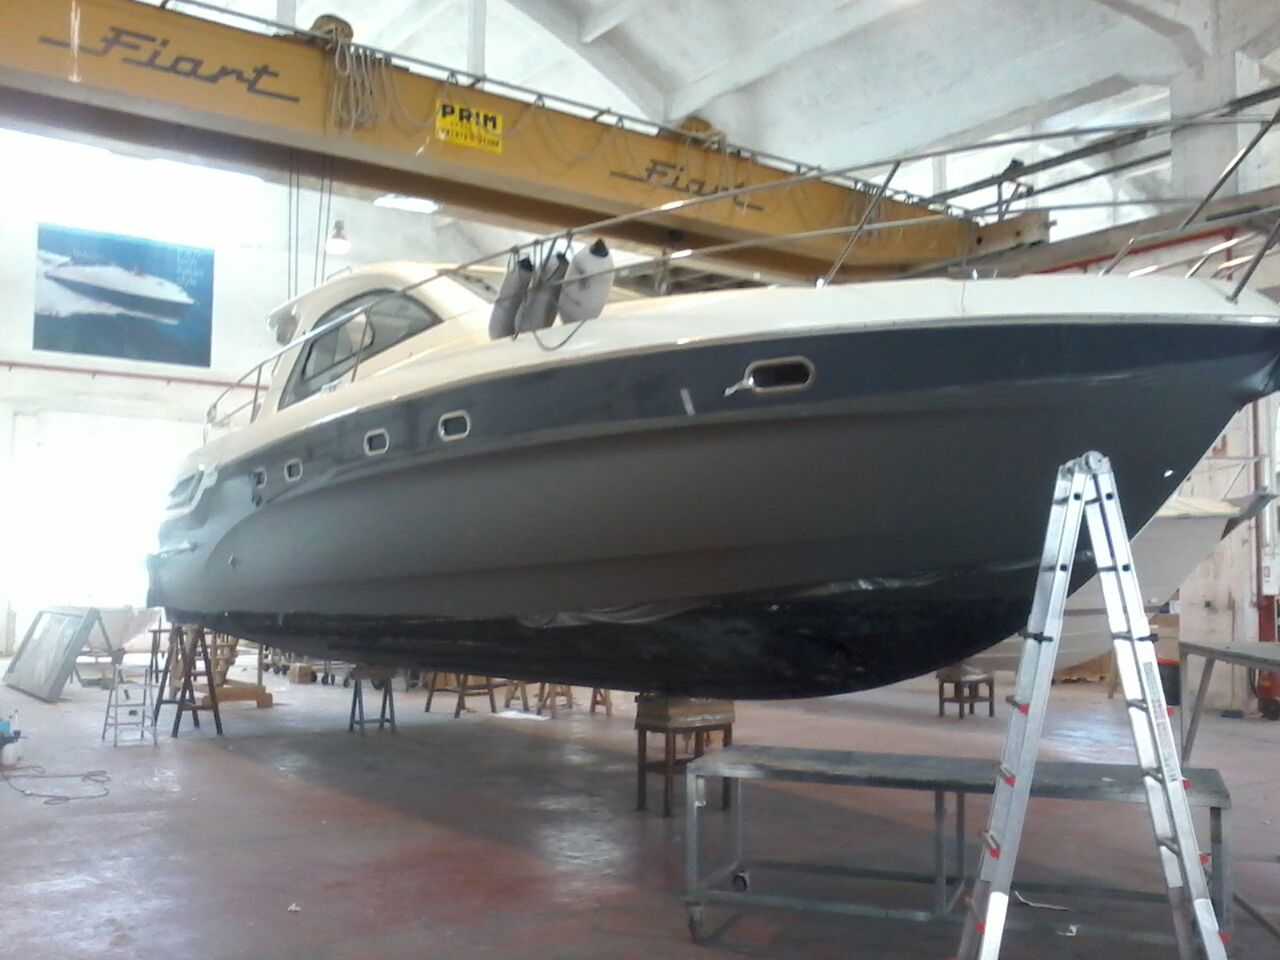 Fiart 45 boat wrapping vista 6